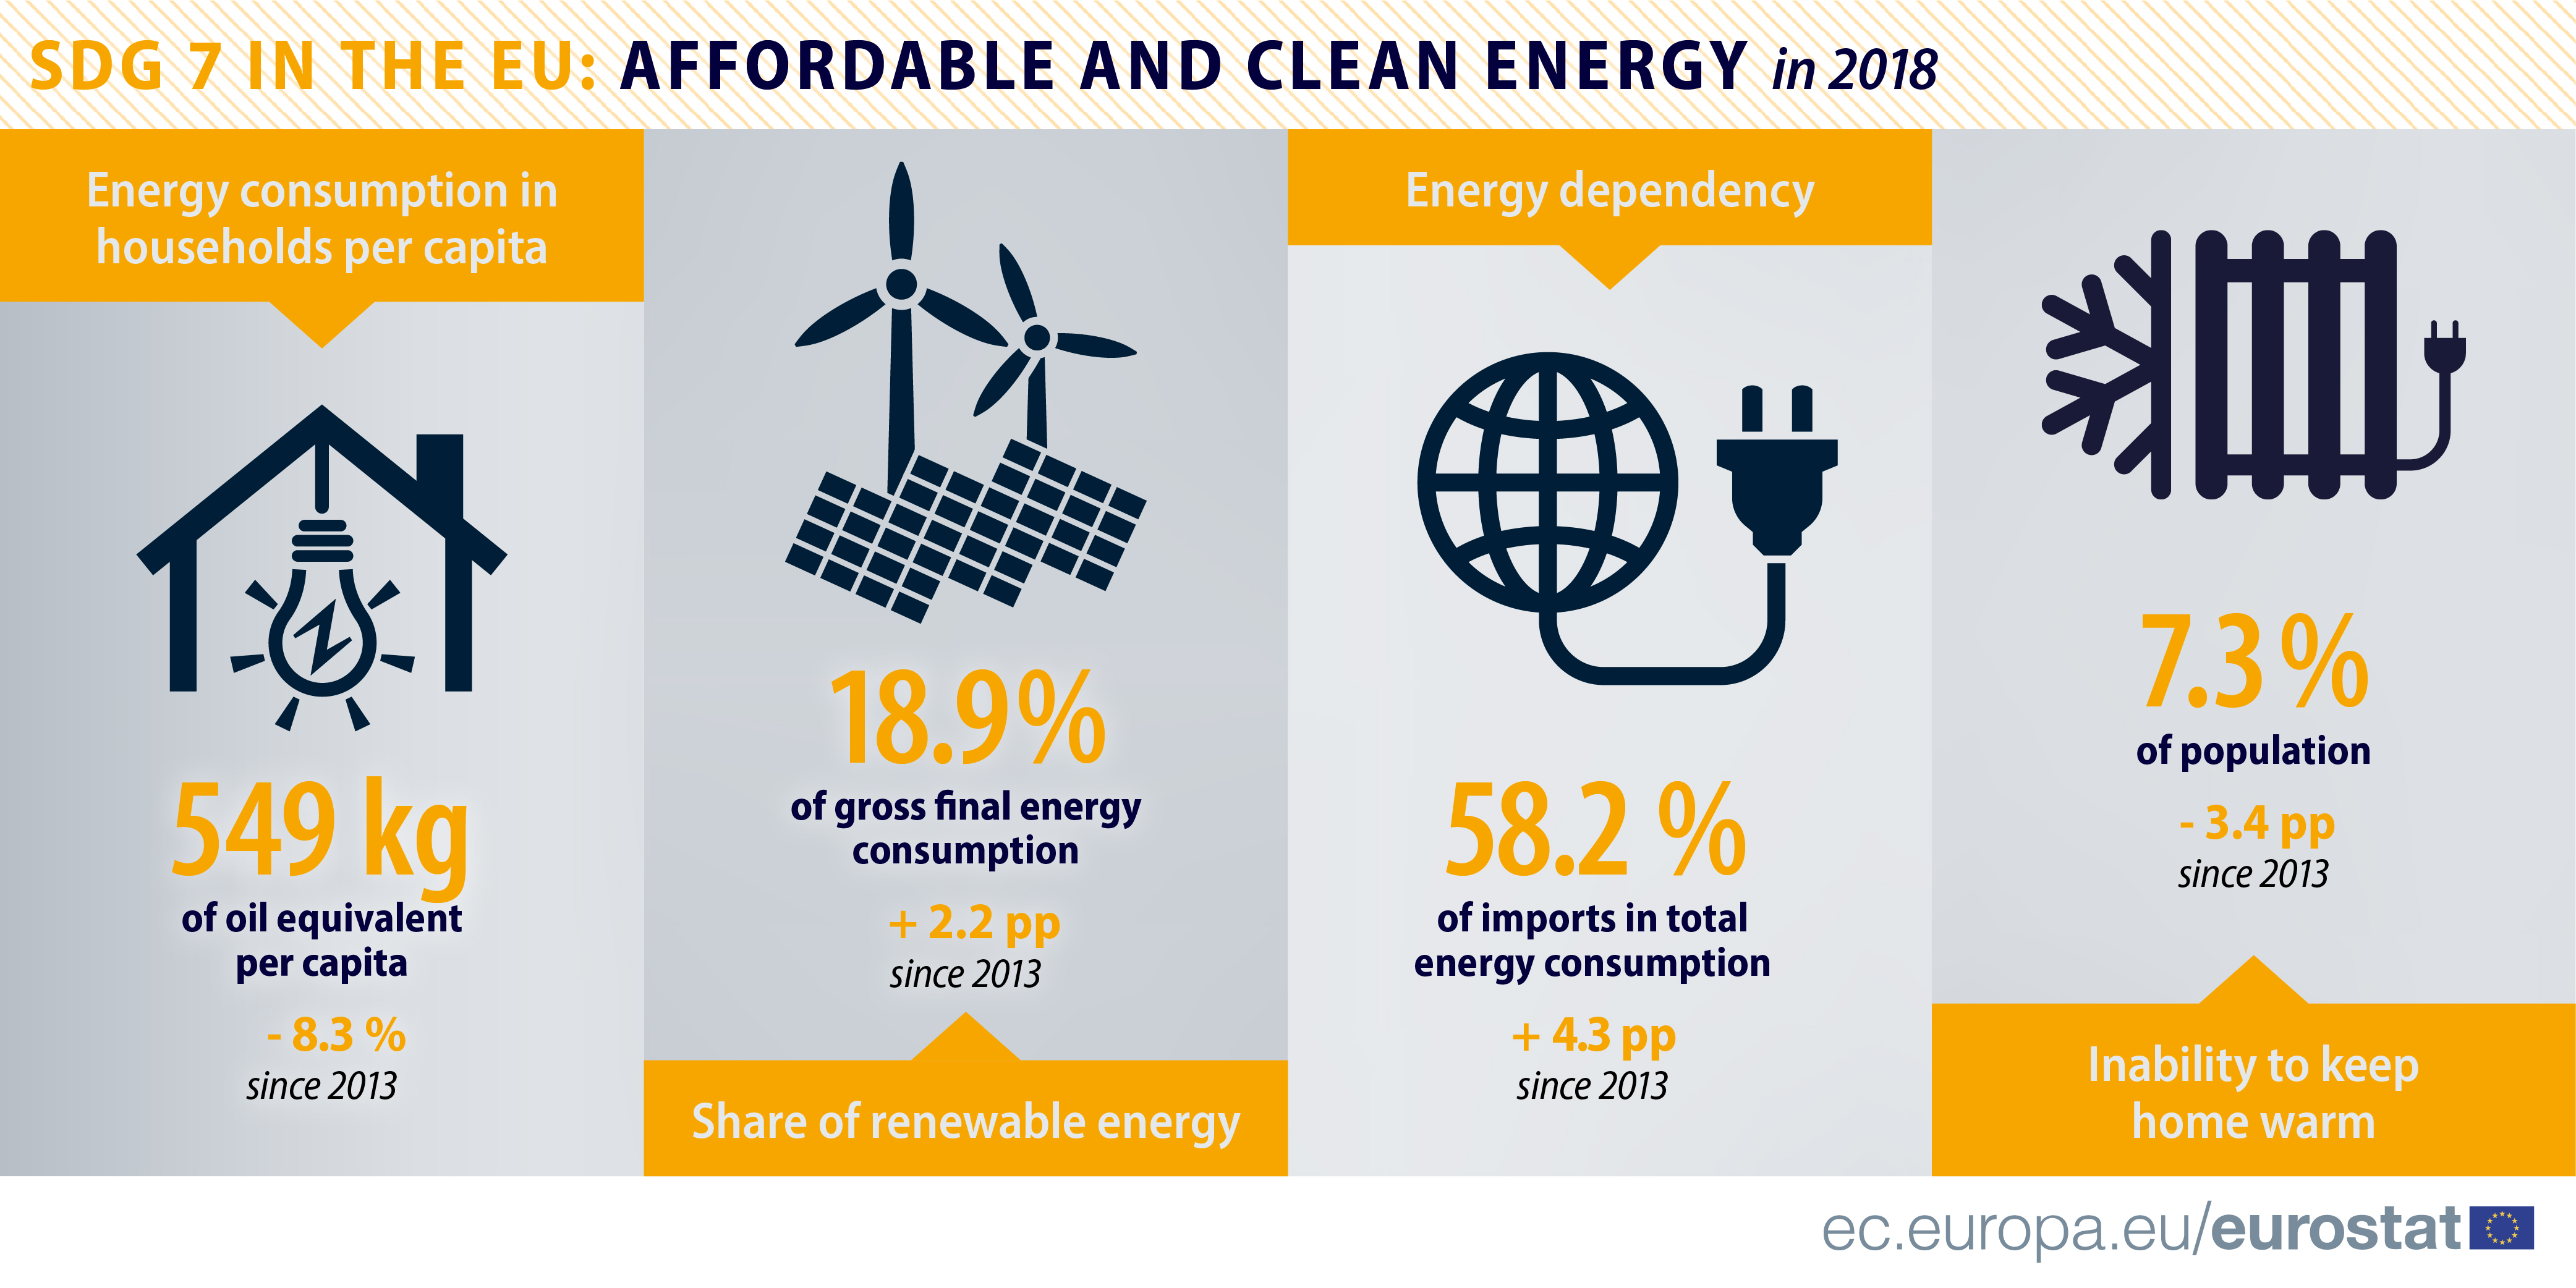 SDG 7 IN THE EU AFFORDABLE AND CLEAN ENERGY in 2018